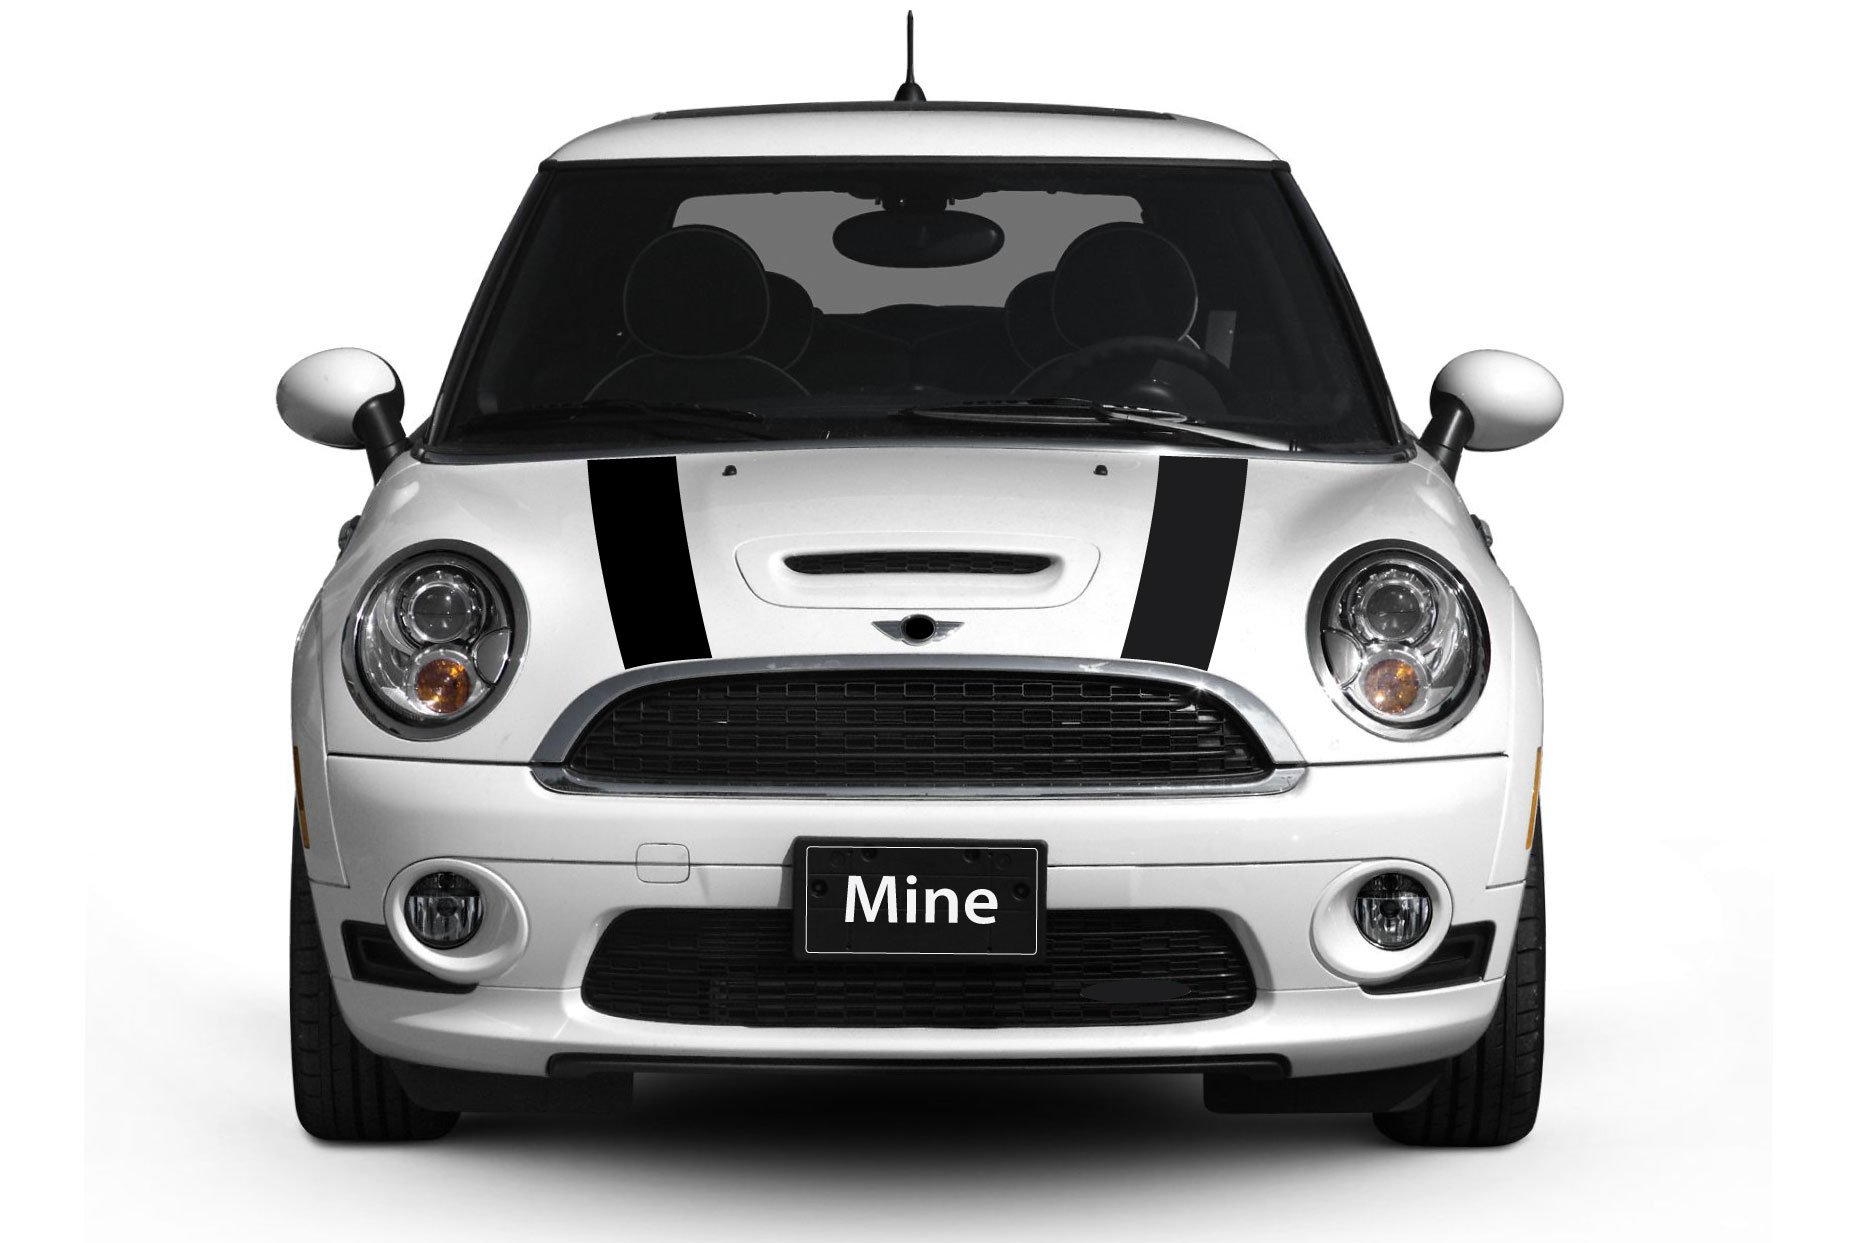 The Pixel Hut gs00064 Black Hood Stripes for MINI Cooper and S R56 (2007-2013)